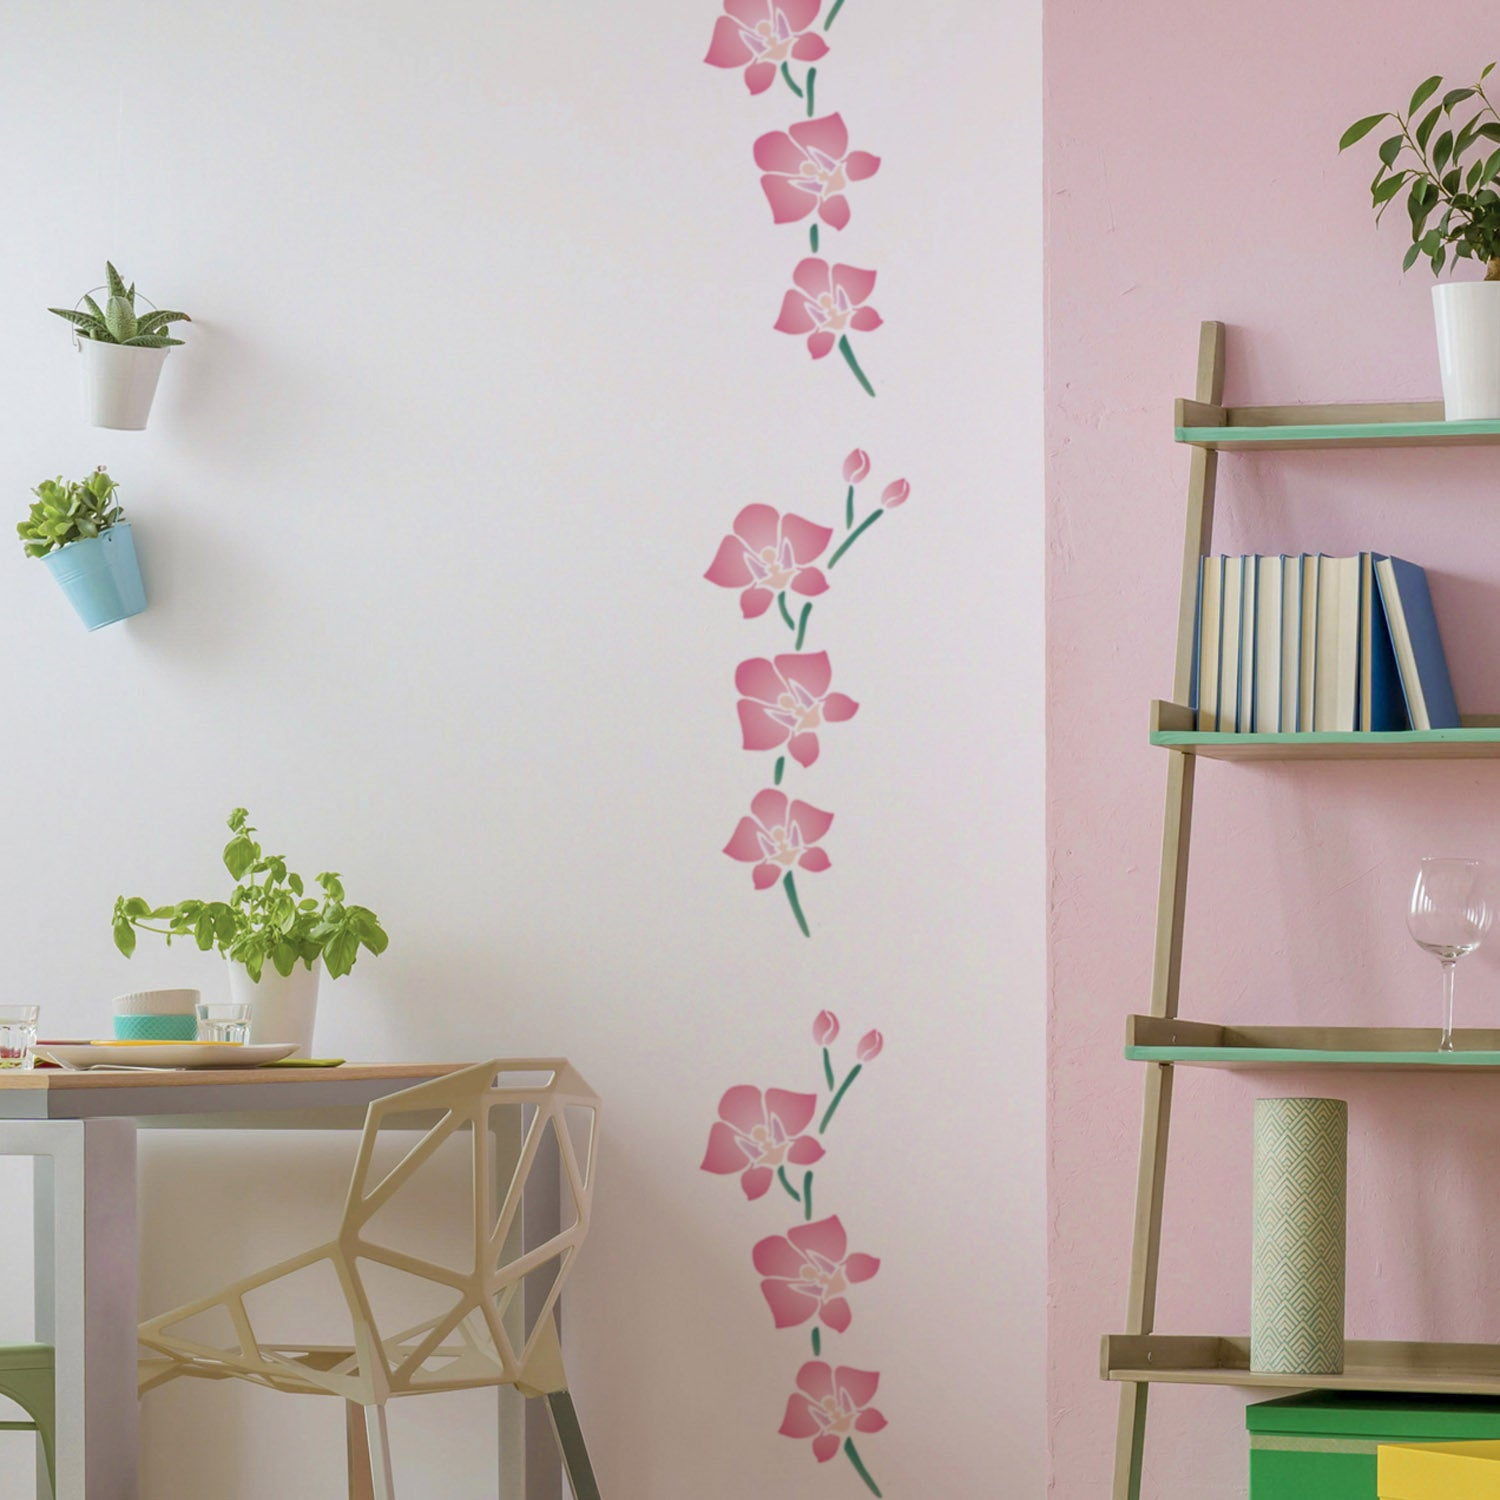 CraftStar Large Orchid Flower Stencil on Wall